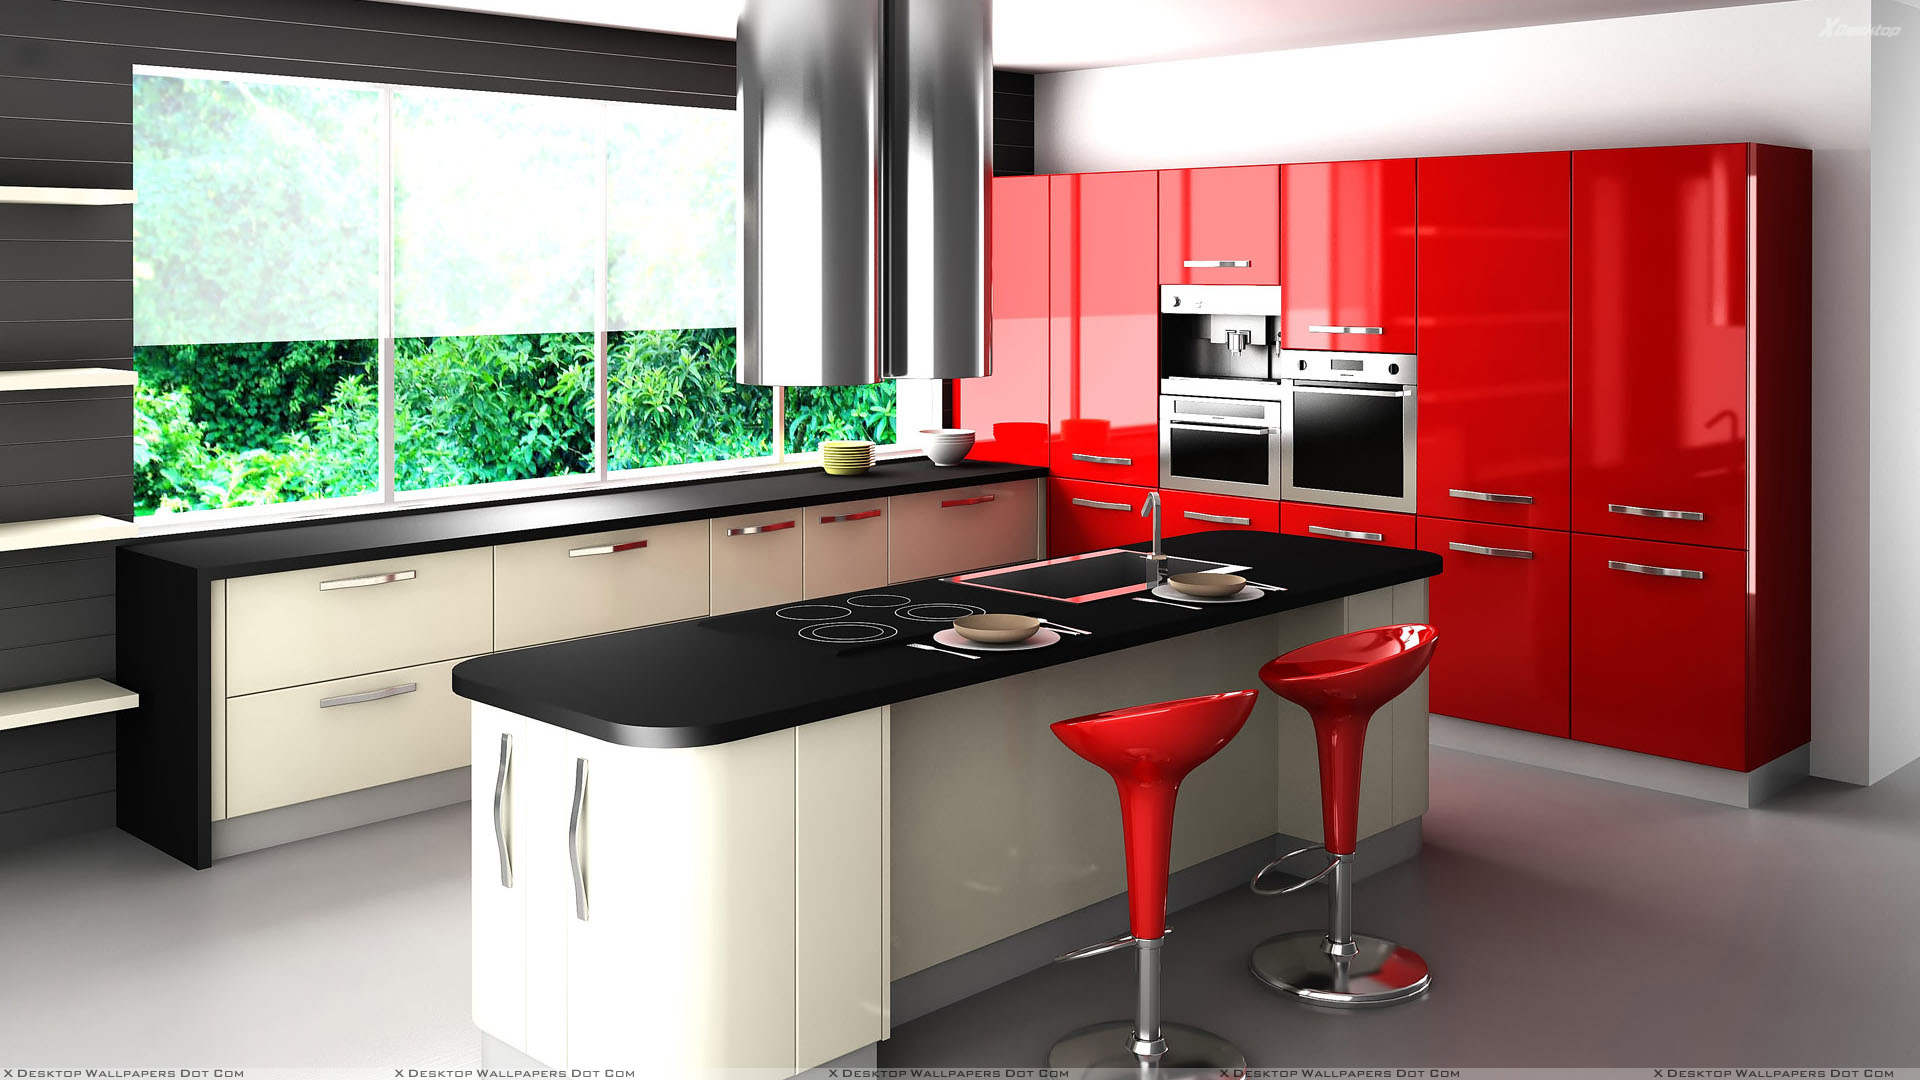 Black And Red Interior In Kitchen Wallpaper